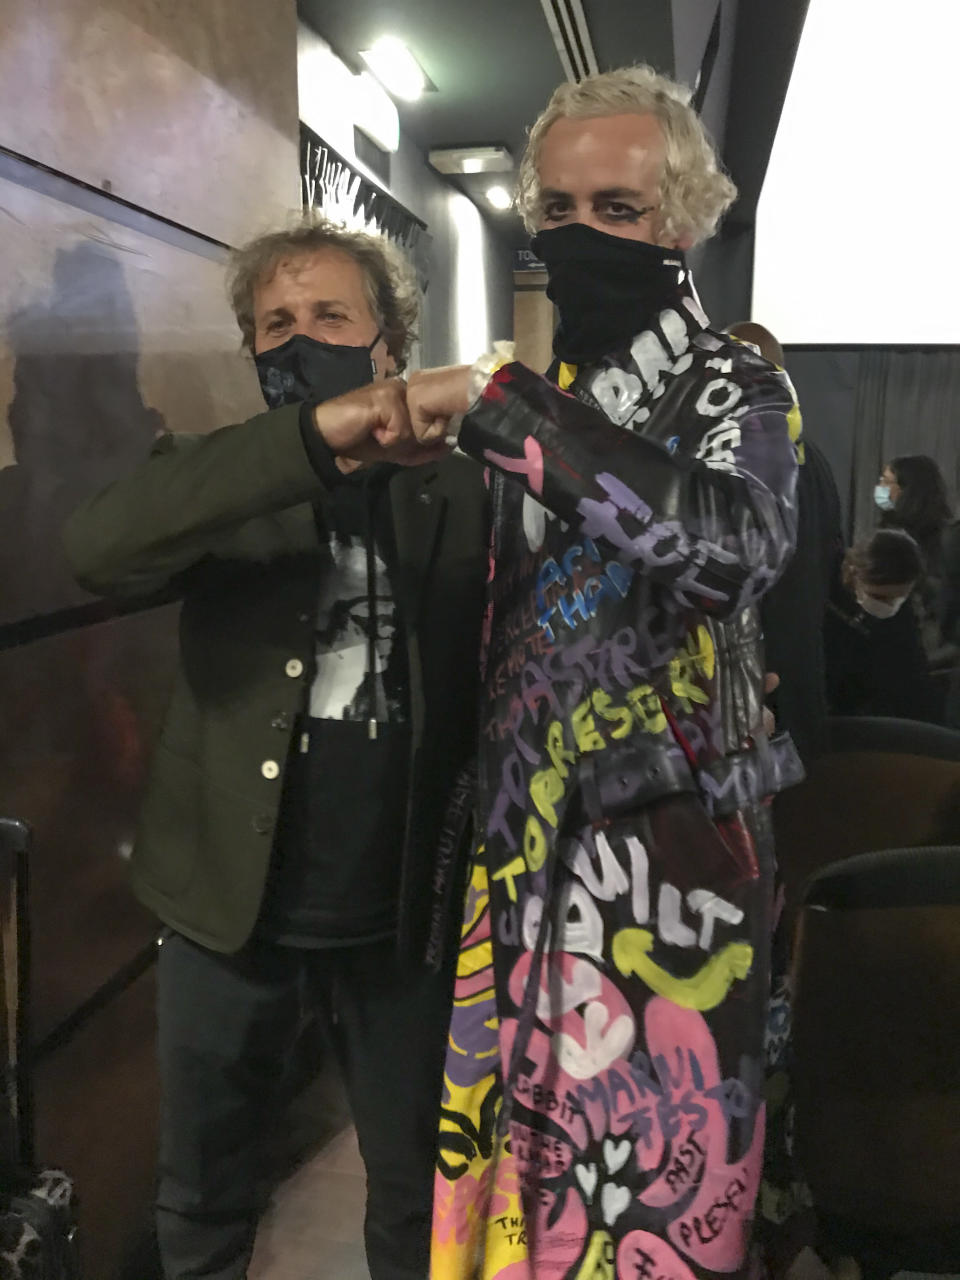 Renzo Rosso, left, and Marni creative director Francesco Risso pose after a screening of a Videos project for Milan Fashion Week, in Milan, Friday, Sept. 25, 2020. Rosso, the founder of the Diesel brand, invested in Marni in 2013. (AP Photo/Colleen Barry)